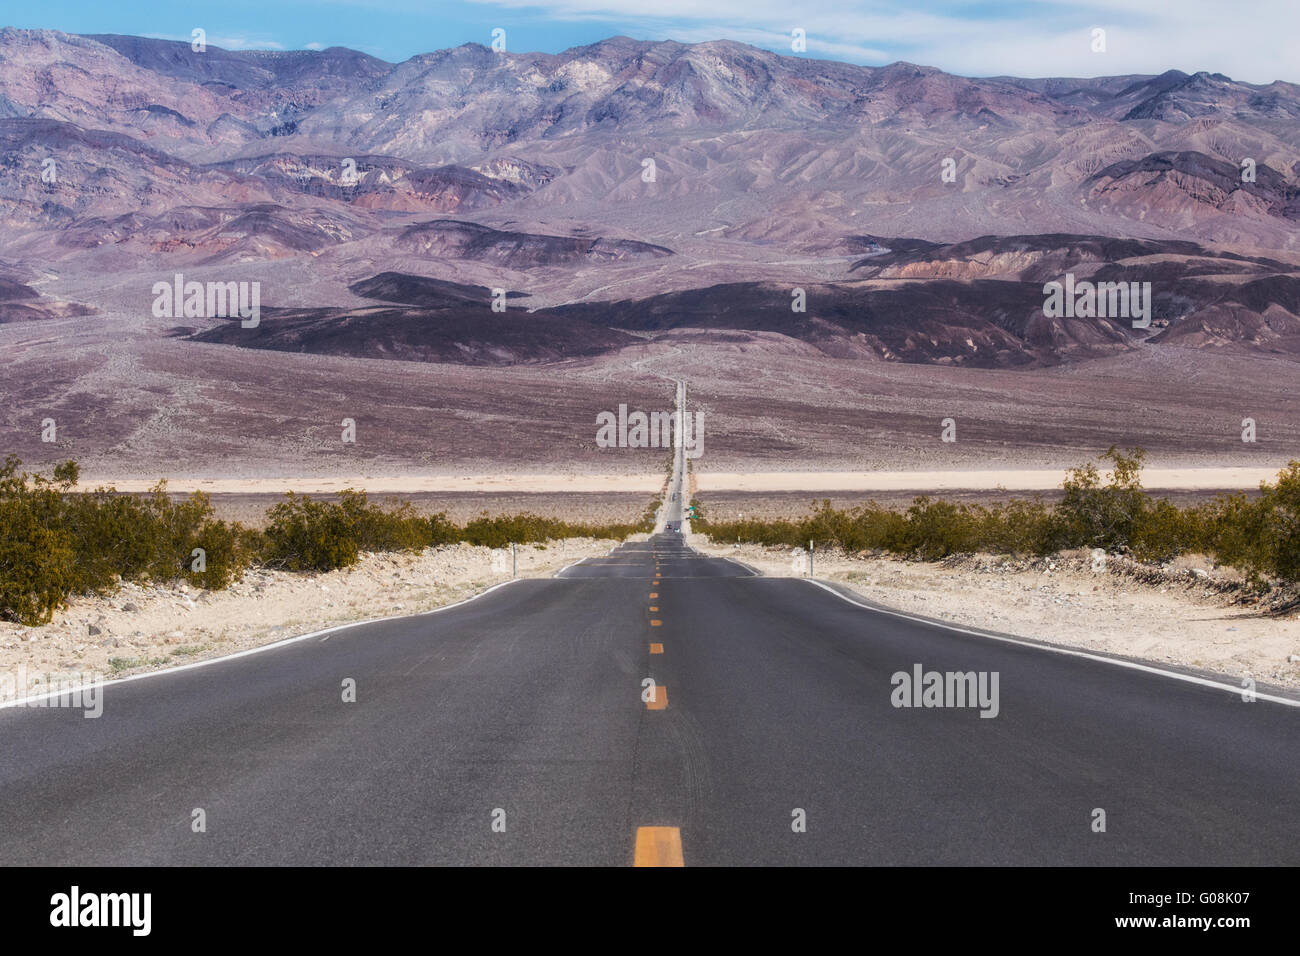 Highway 190 through Panamint Valley Stock Photo